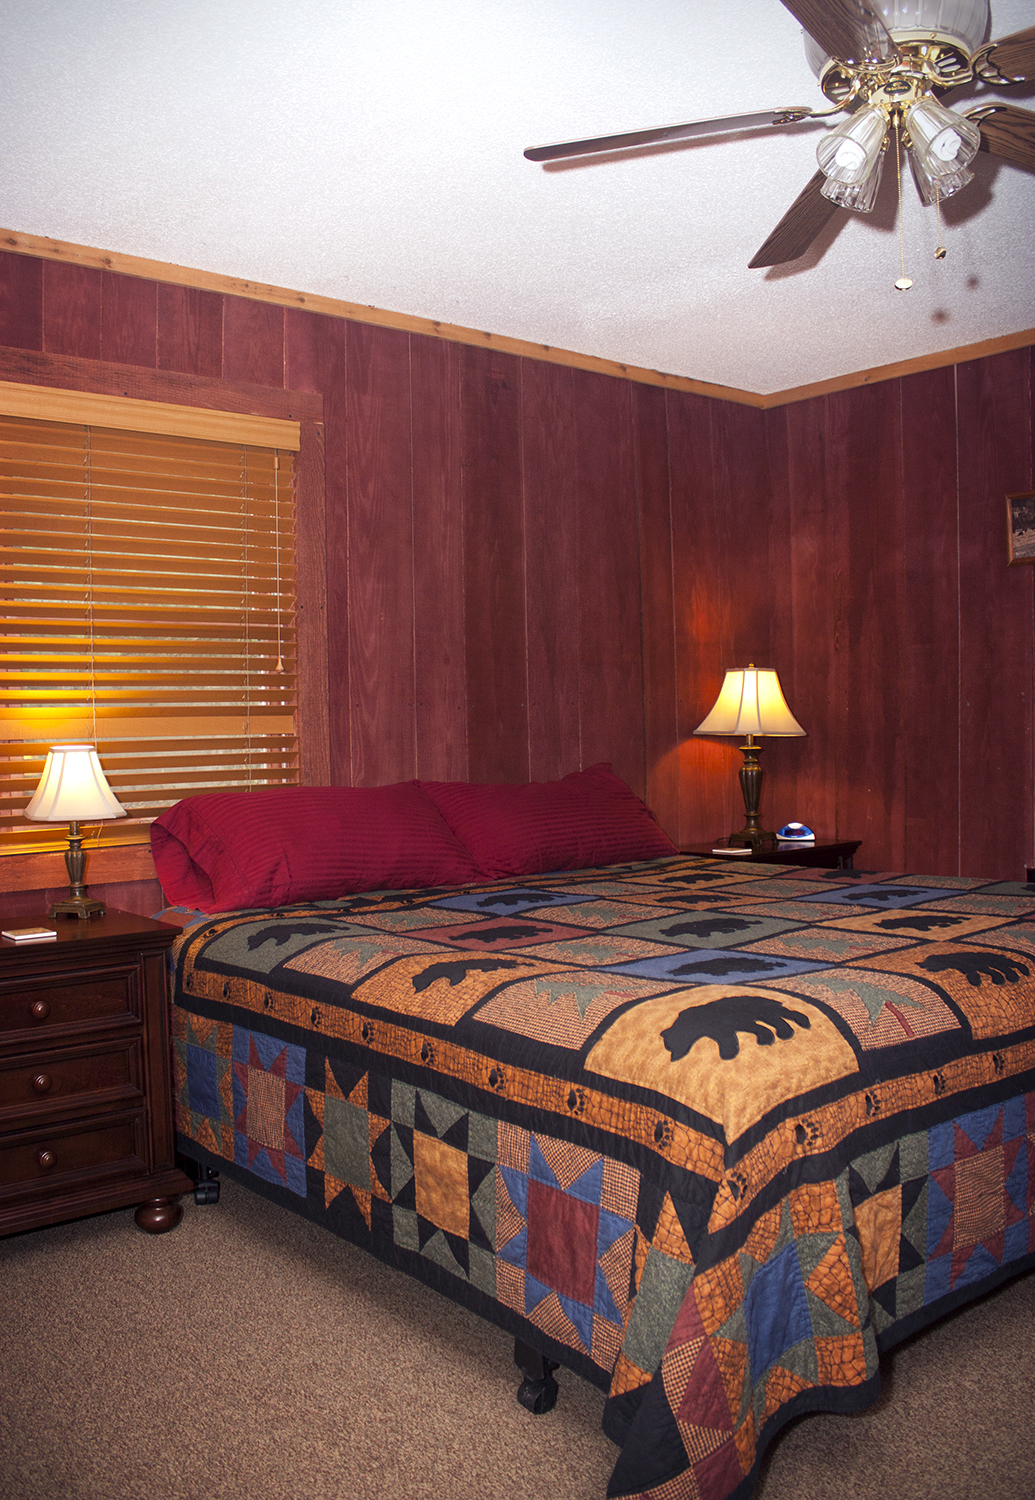 Rustic Lodge bedroom1.jpg